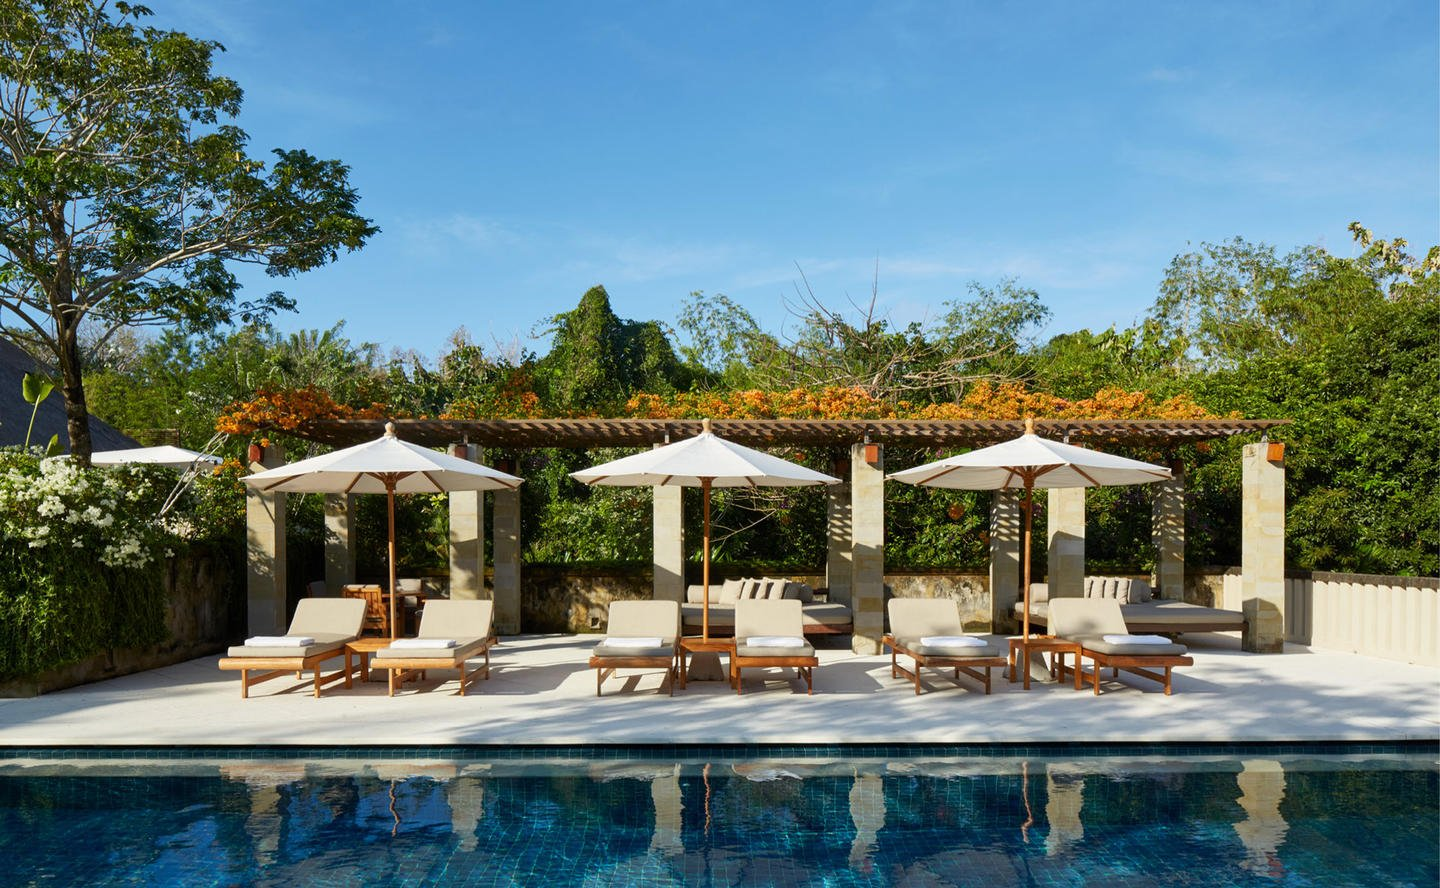 Sun Loungers by Swimming Pool, Four-Bedroom Villa - Aman Villas at Nusa Dua, Bali